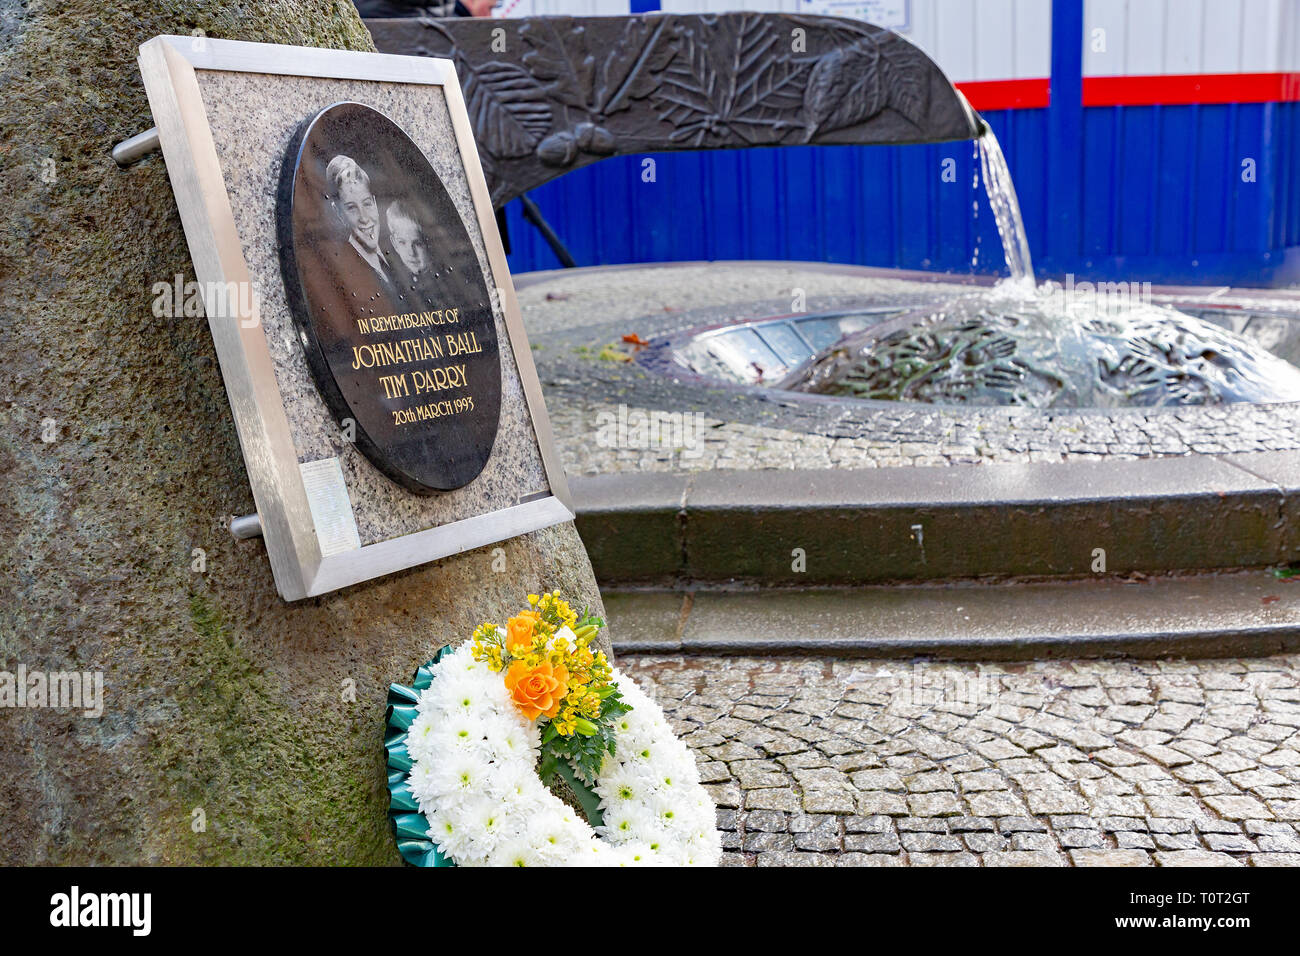 The River of Life' in Bridge Street. A wreath has been laid by the Mayor of Warrington to mark the 26th anniversary of the Warrington Bombing - Stock Image